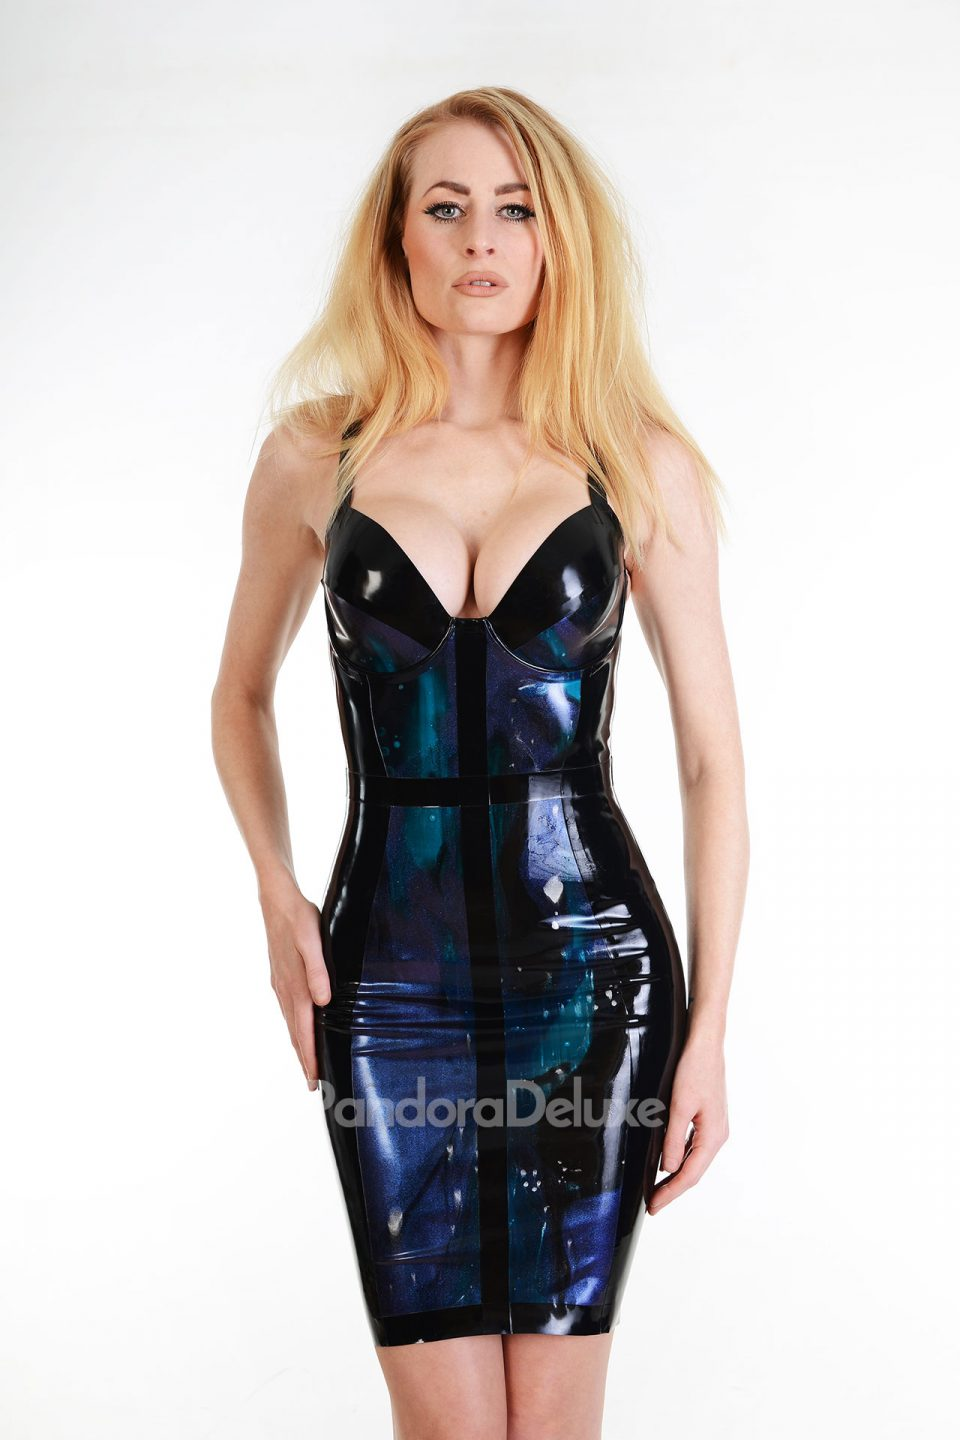 Cyan latex dress by Pandora Deluxe